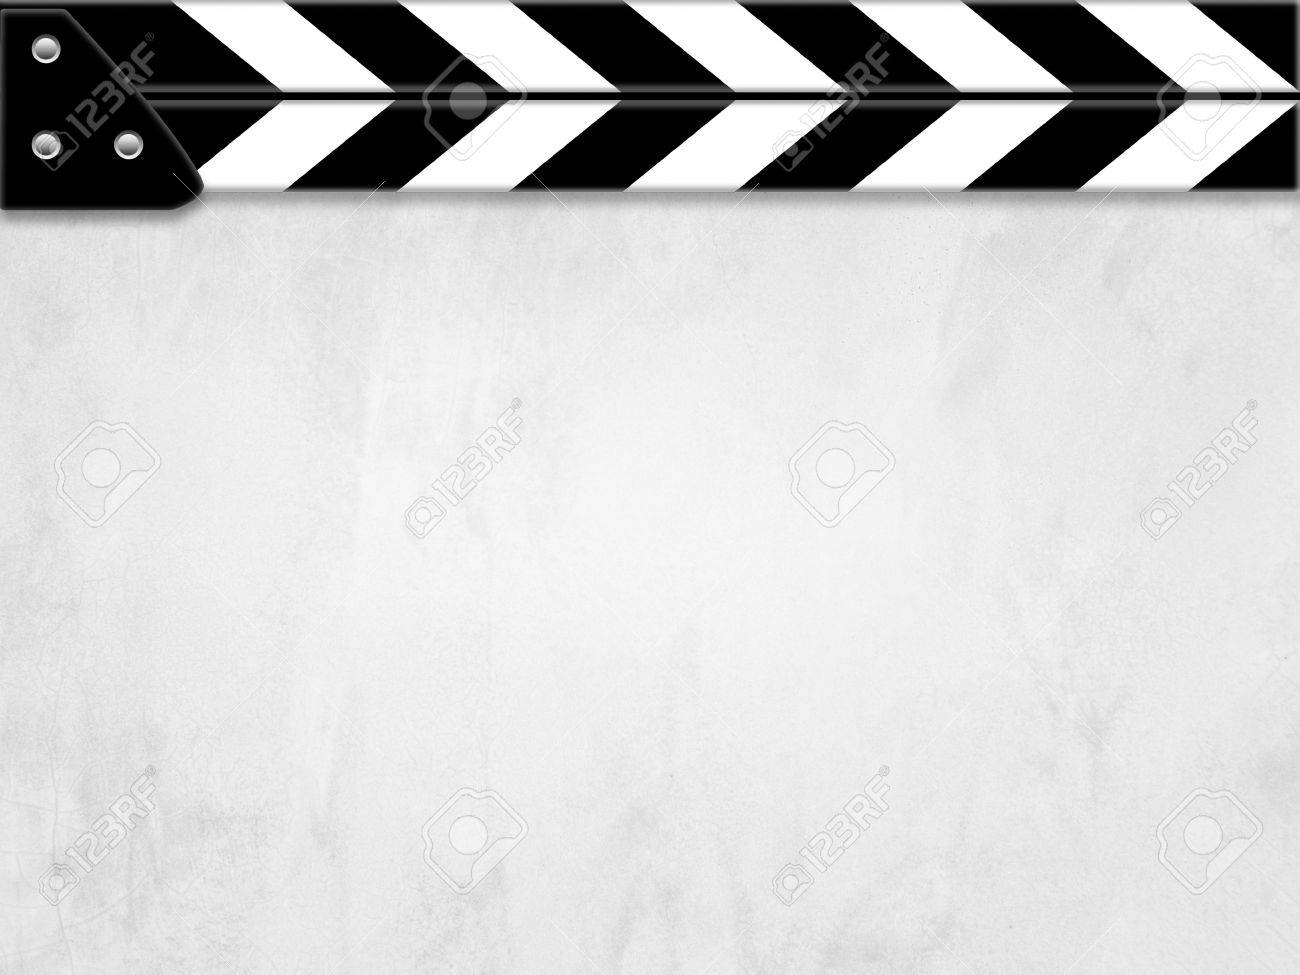 Clapper board or slate white board with texture - 17215405